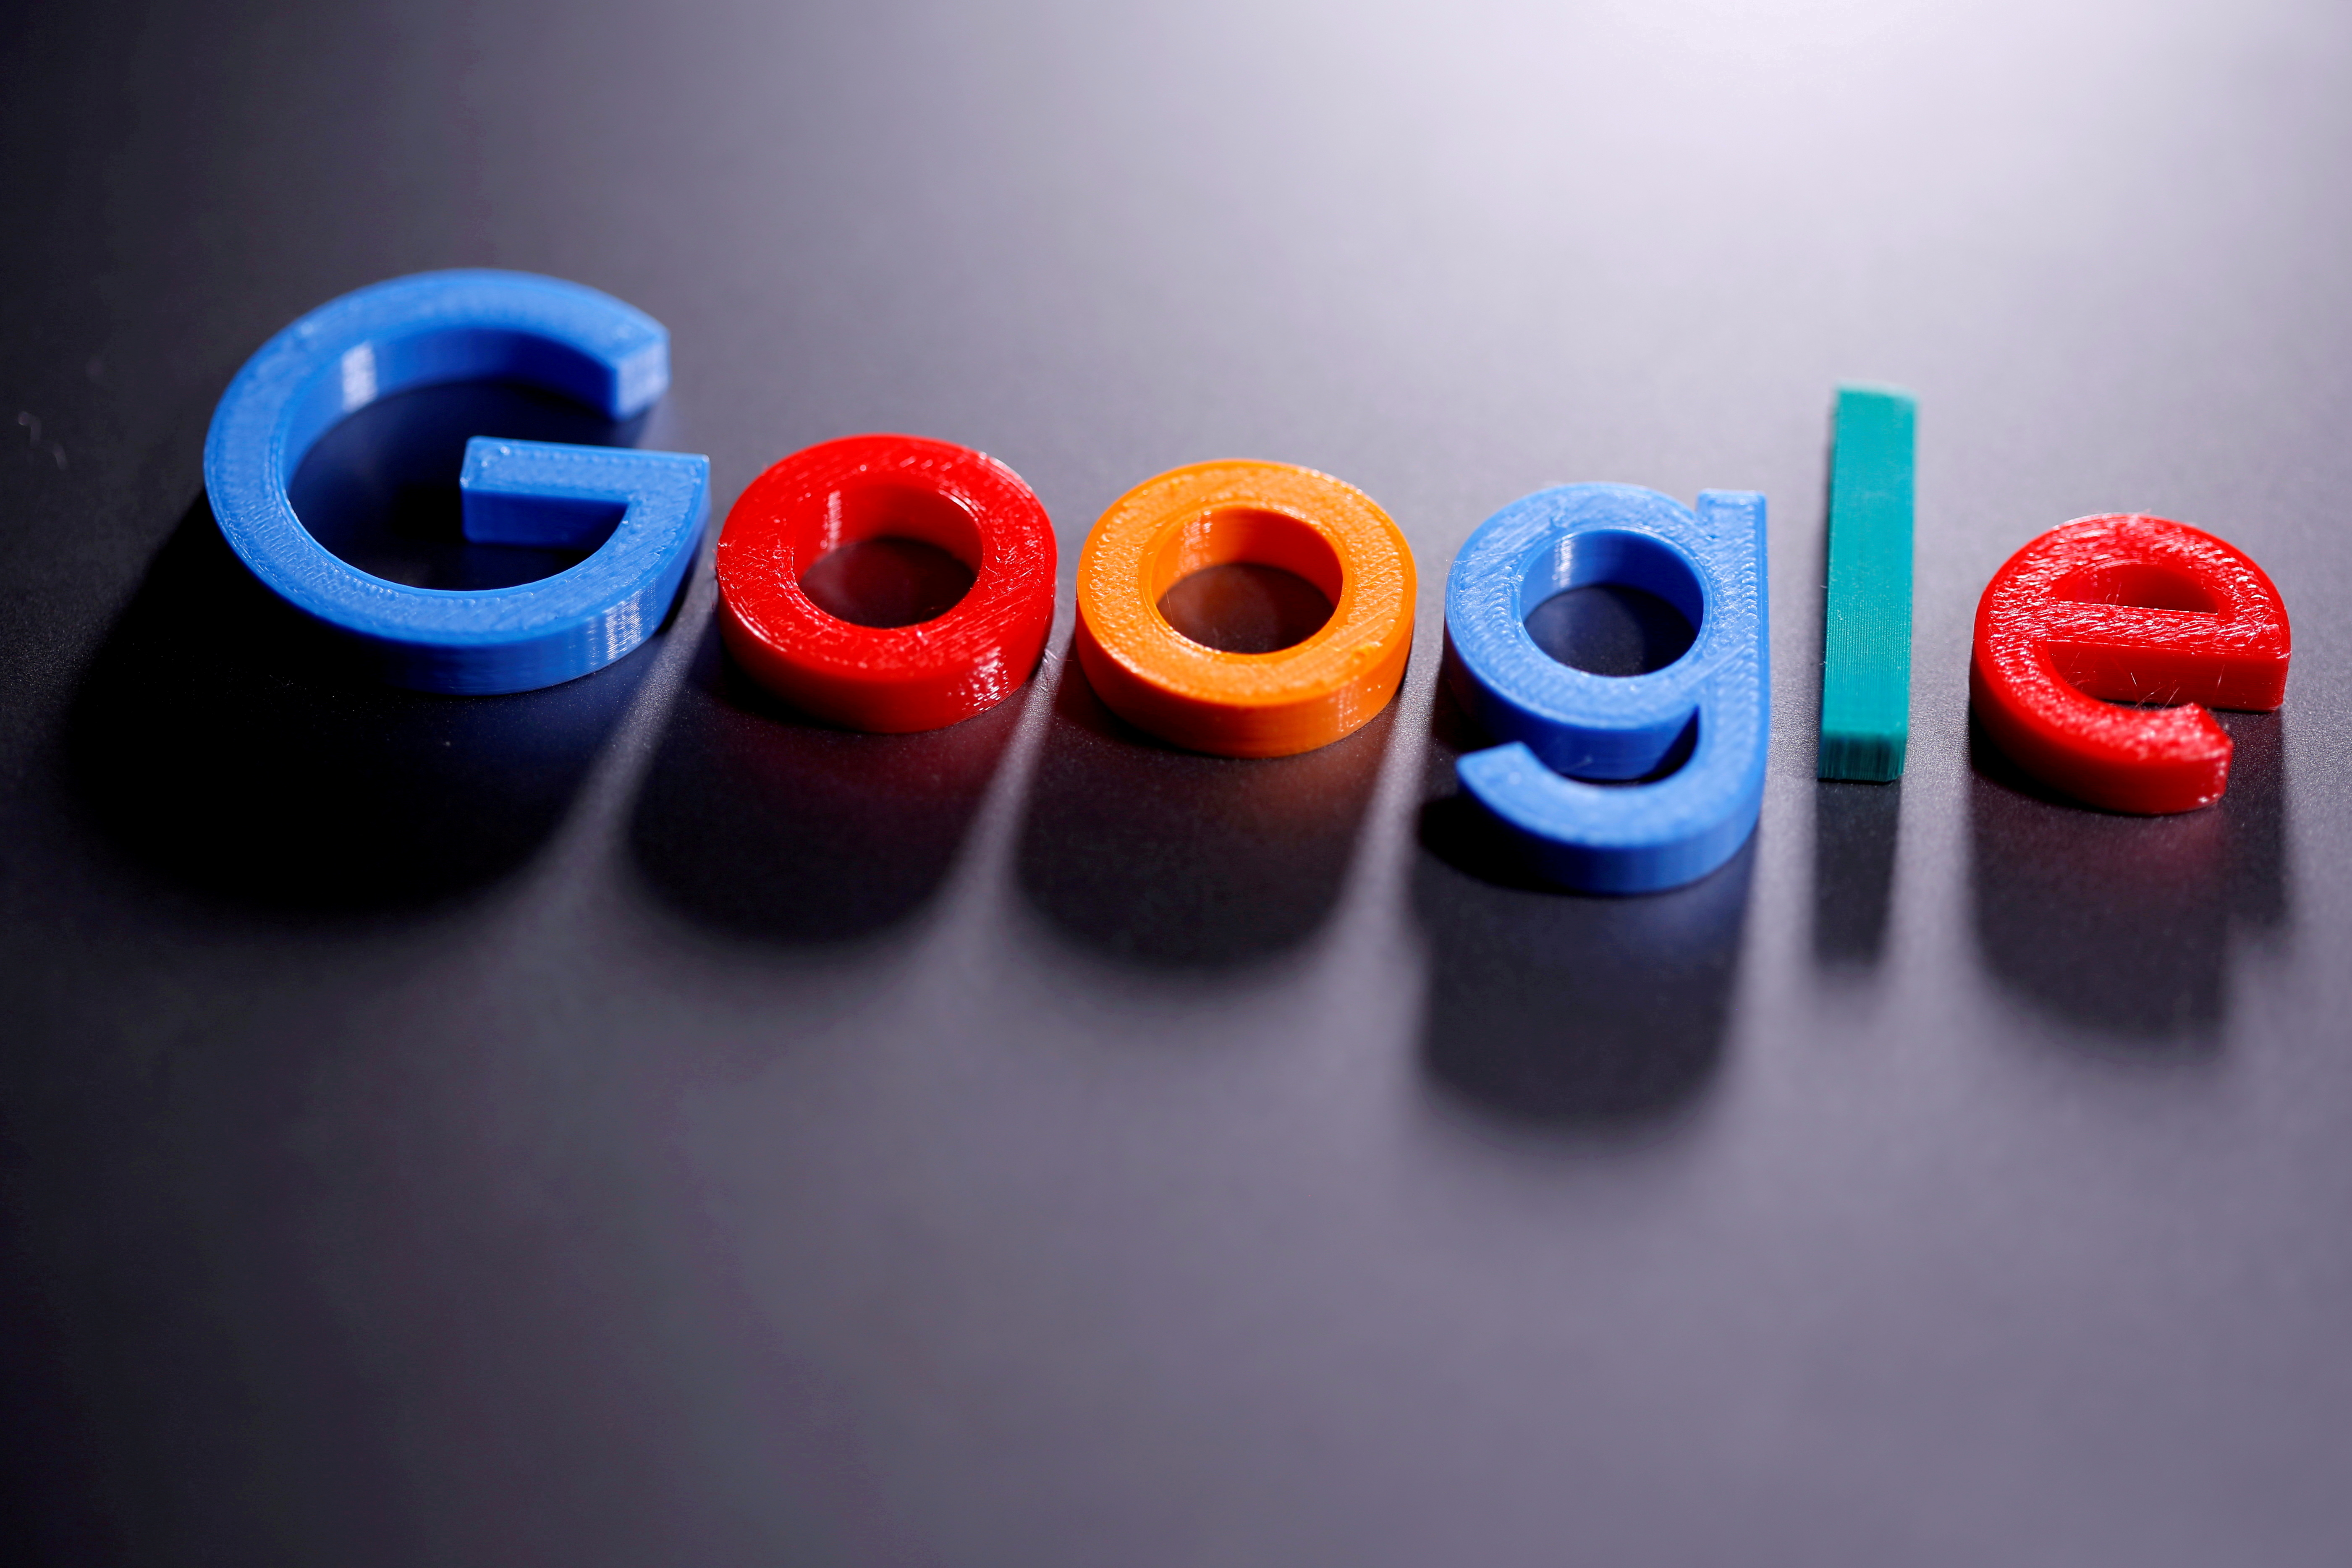 A 3D-printed Google logo is seen in this illustration taken April 12, 2020. REUTERS/Dado Ruvic